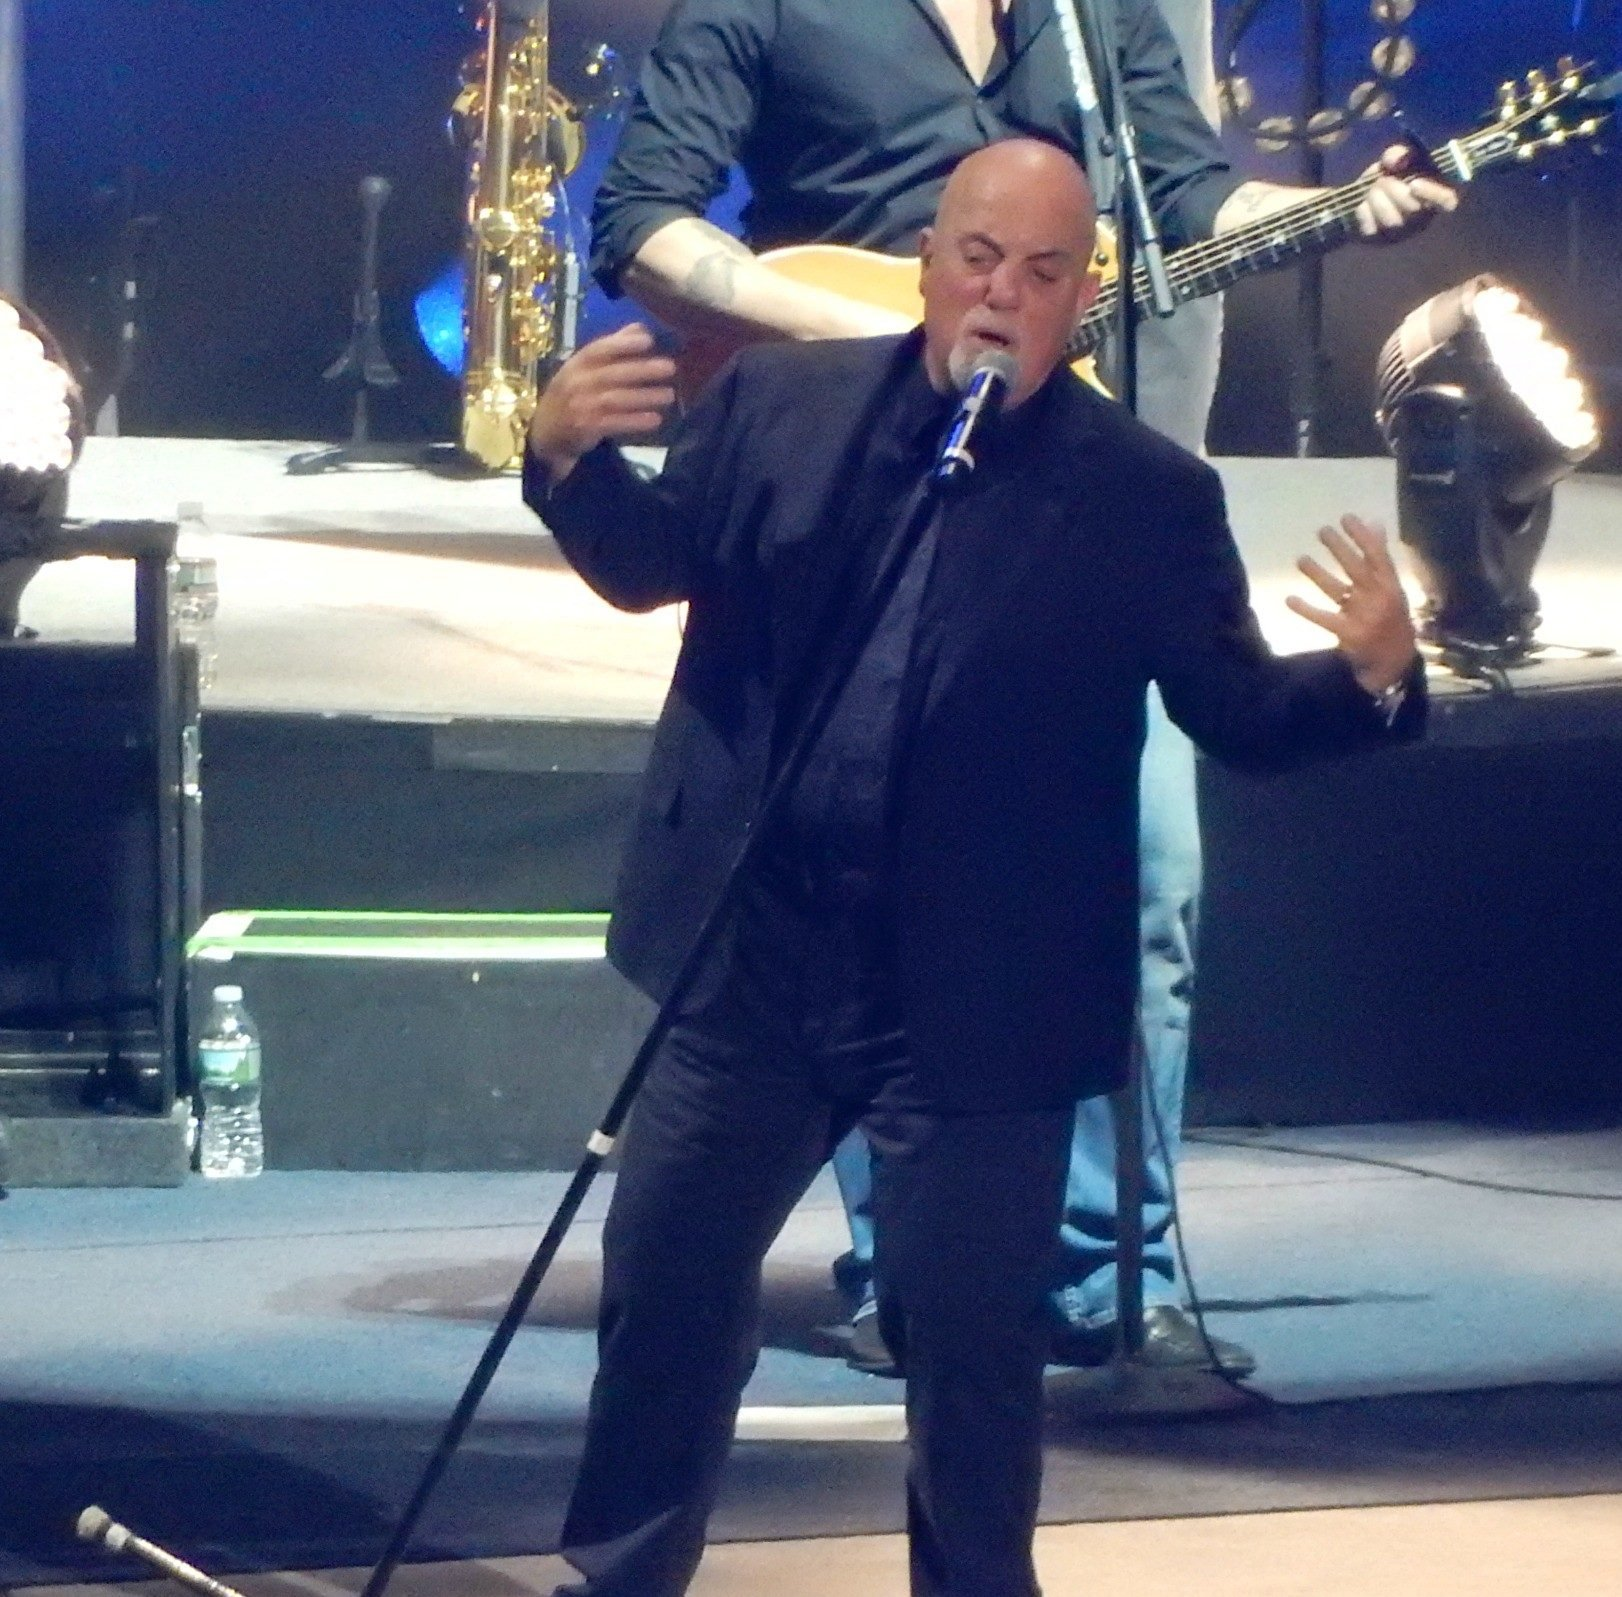 32909046672 2cfe9f2251 k 1 e1621427529975 20 Things You Probably Didn't Know About Billy Joel